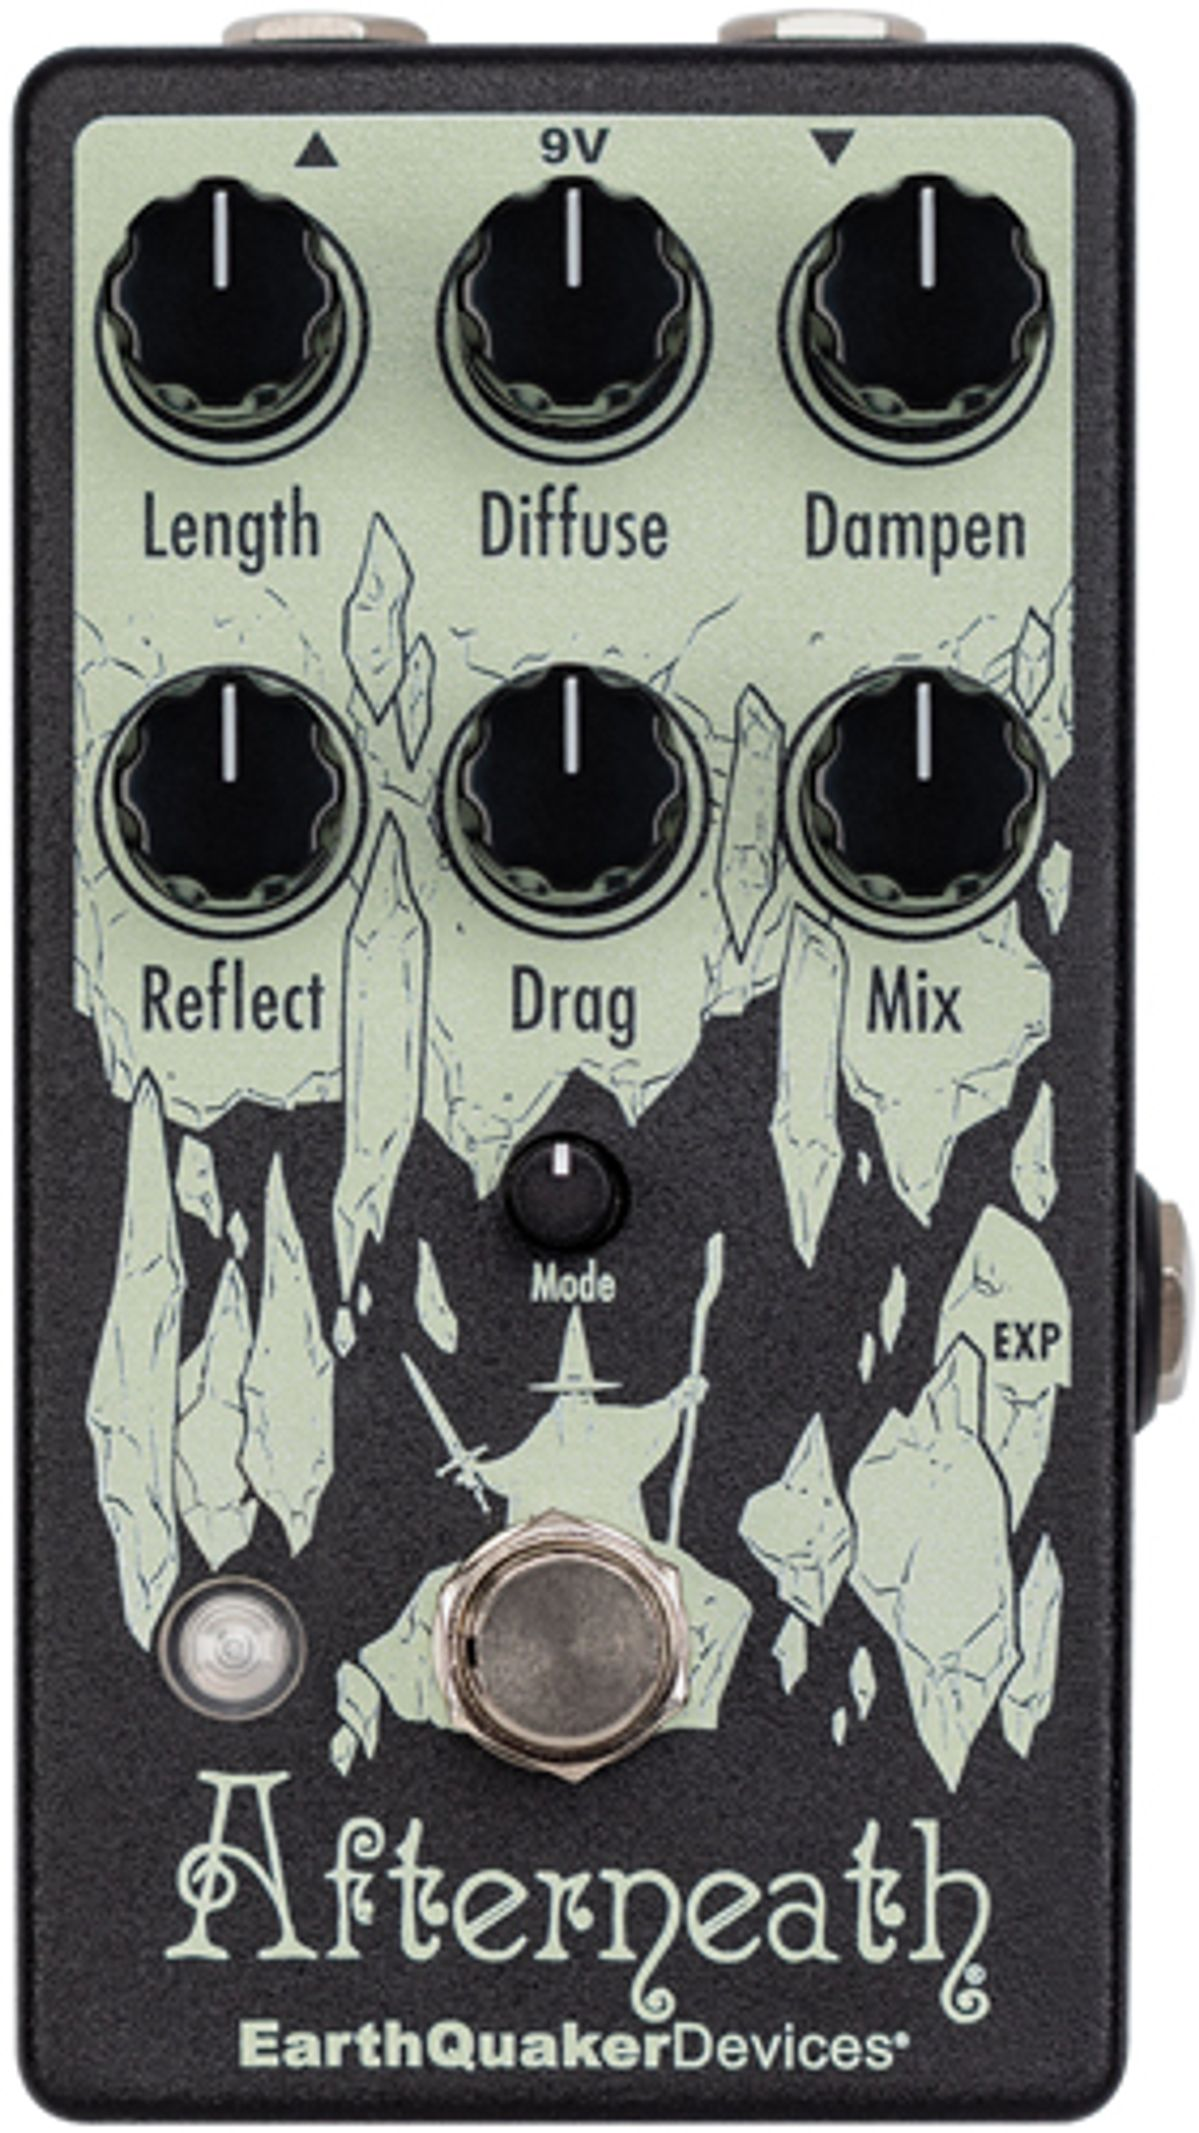 EarthQuaker Devices Updates the Afterneath Enhanced Otherworldly Reverberation Device